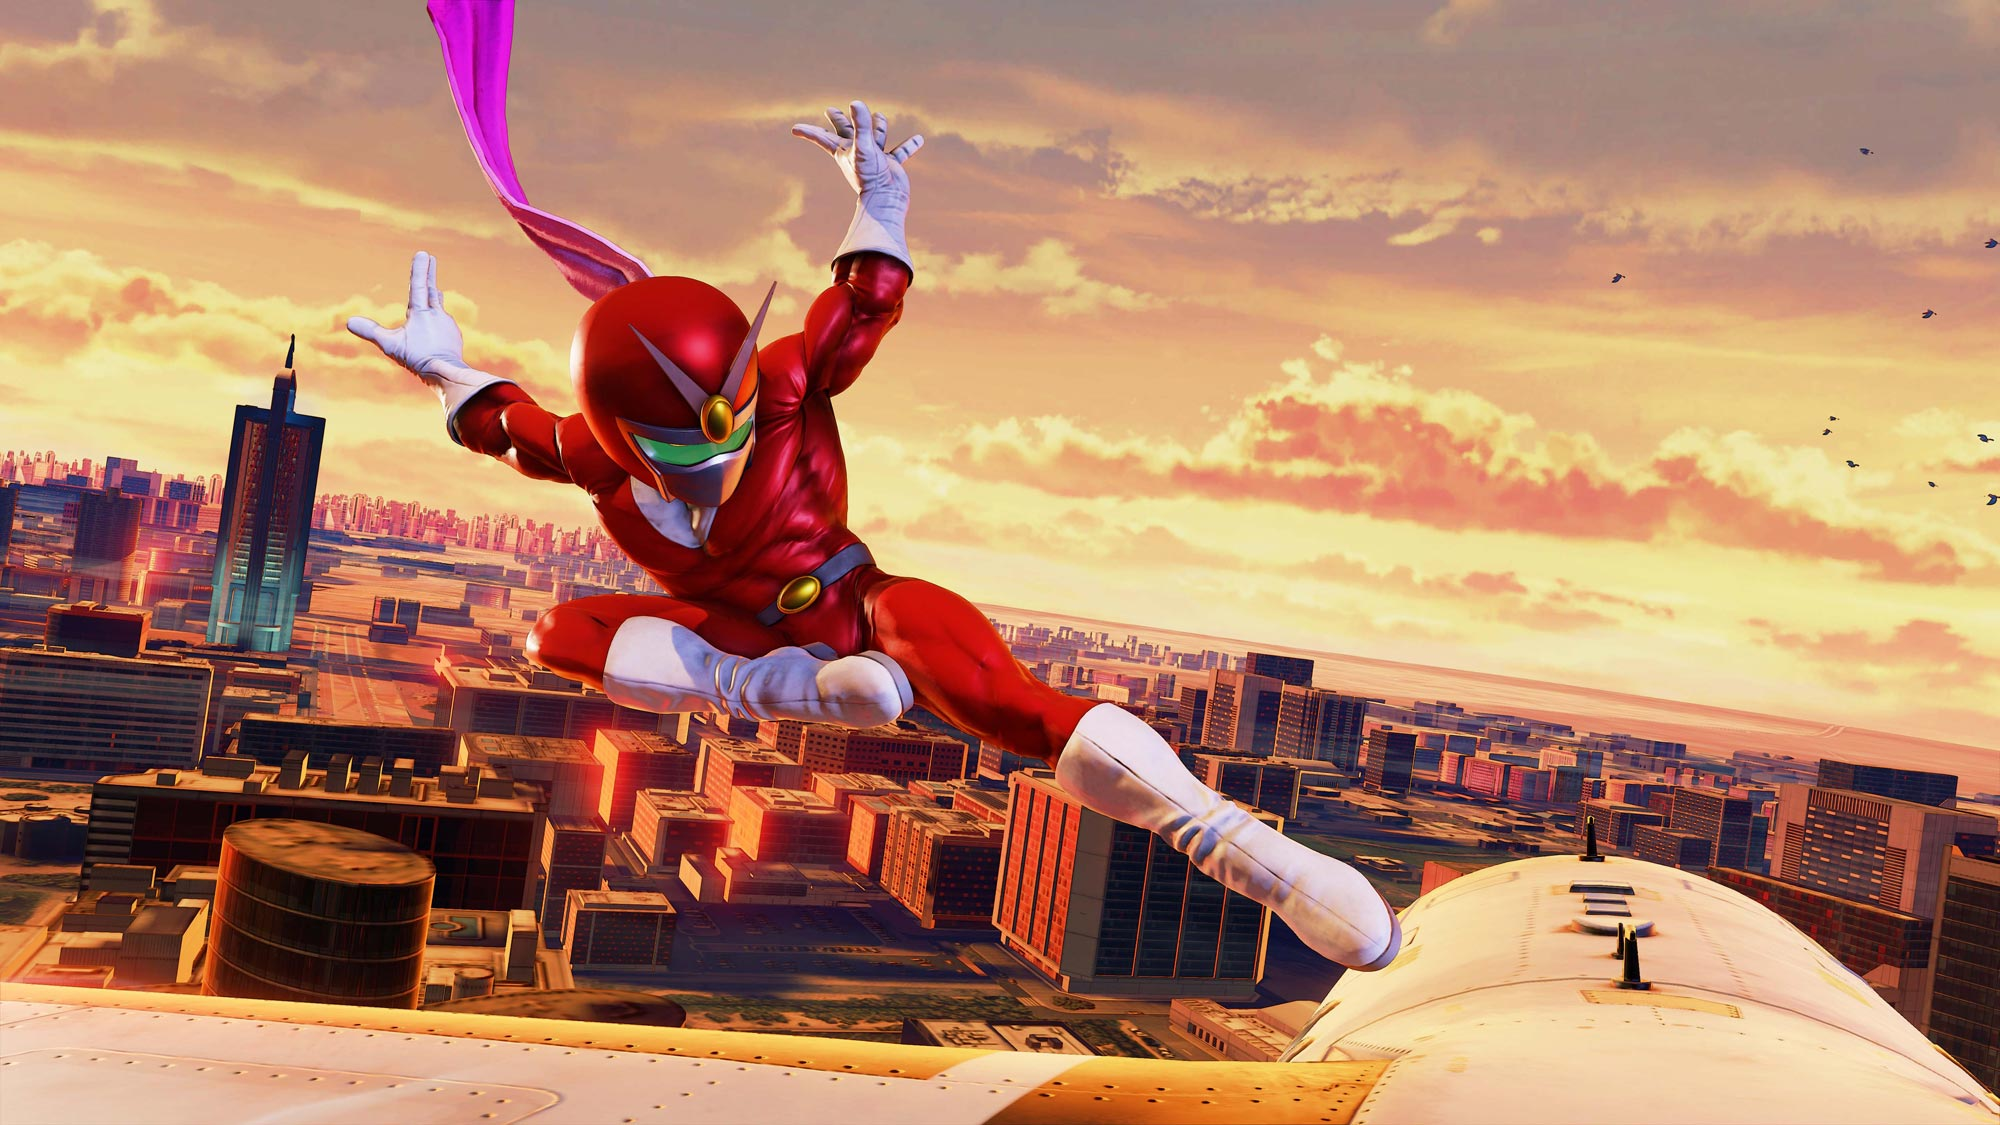 Street Fighter 5: Arcade Edition launch images 4 out of 15 image gallery